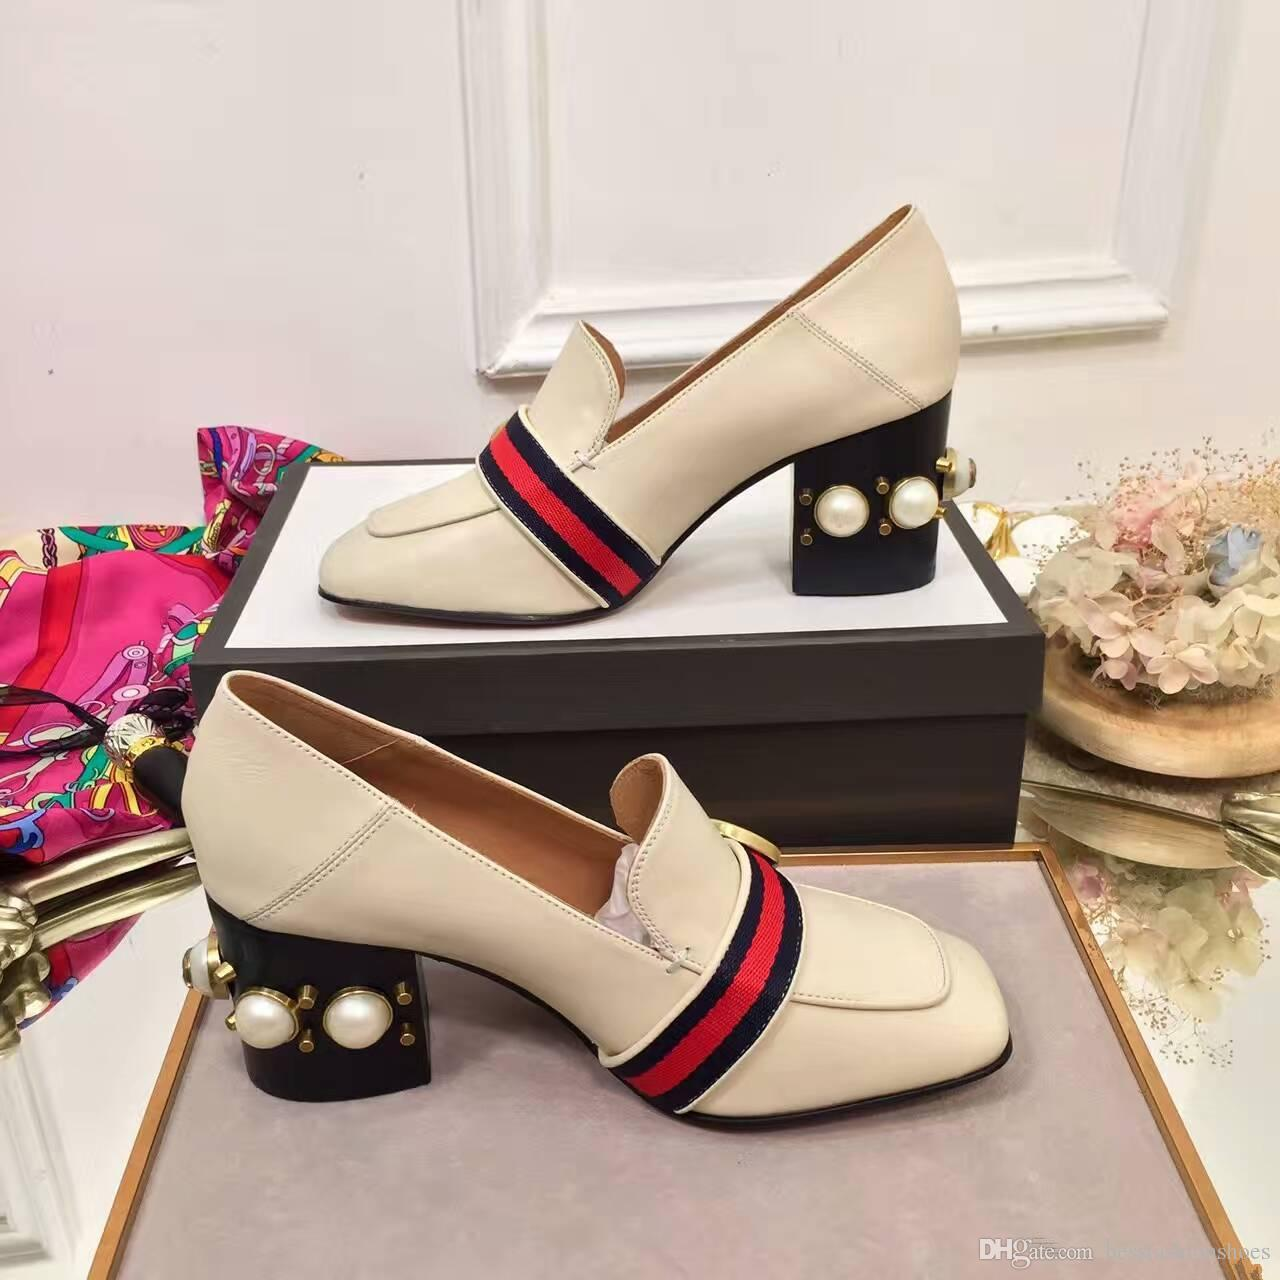 9f72294925 Retro Sheepskin Lazy Loafer Shoes Women Square Toe Pearl Rivet Chunky Heel  Pumps Woman Fashion High Heel Shoes Dress Wedding Shoes Slippers Boots For  Men ...